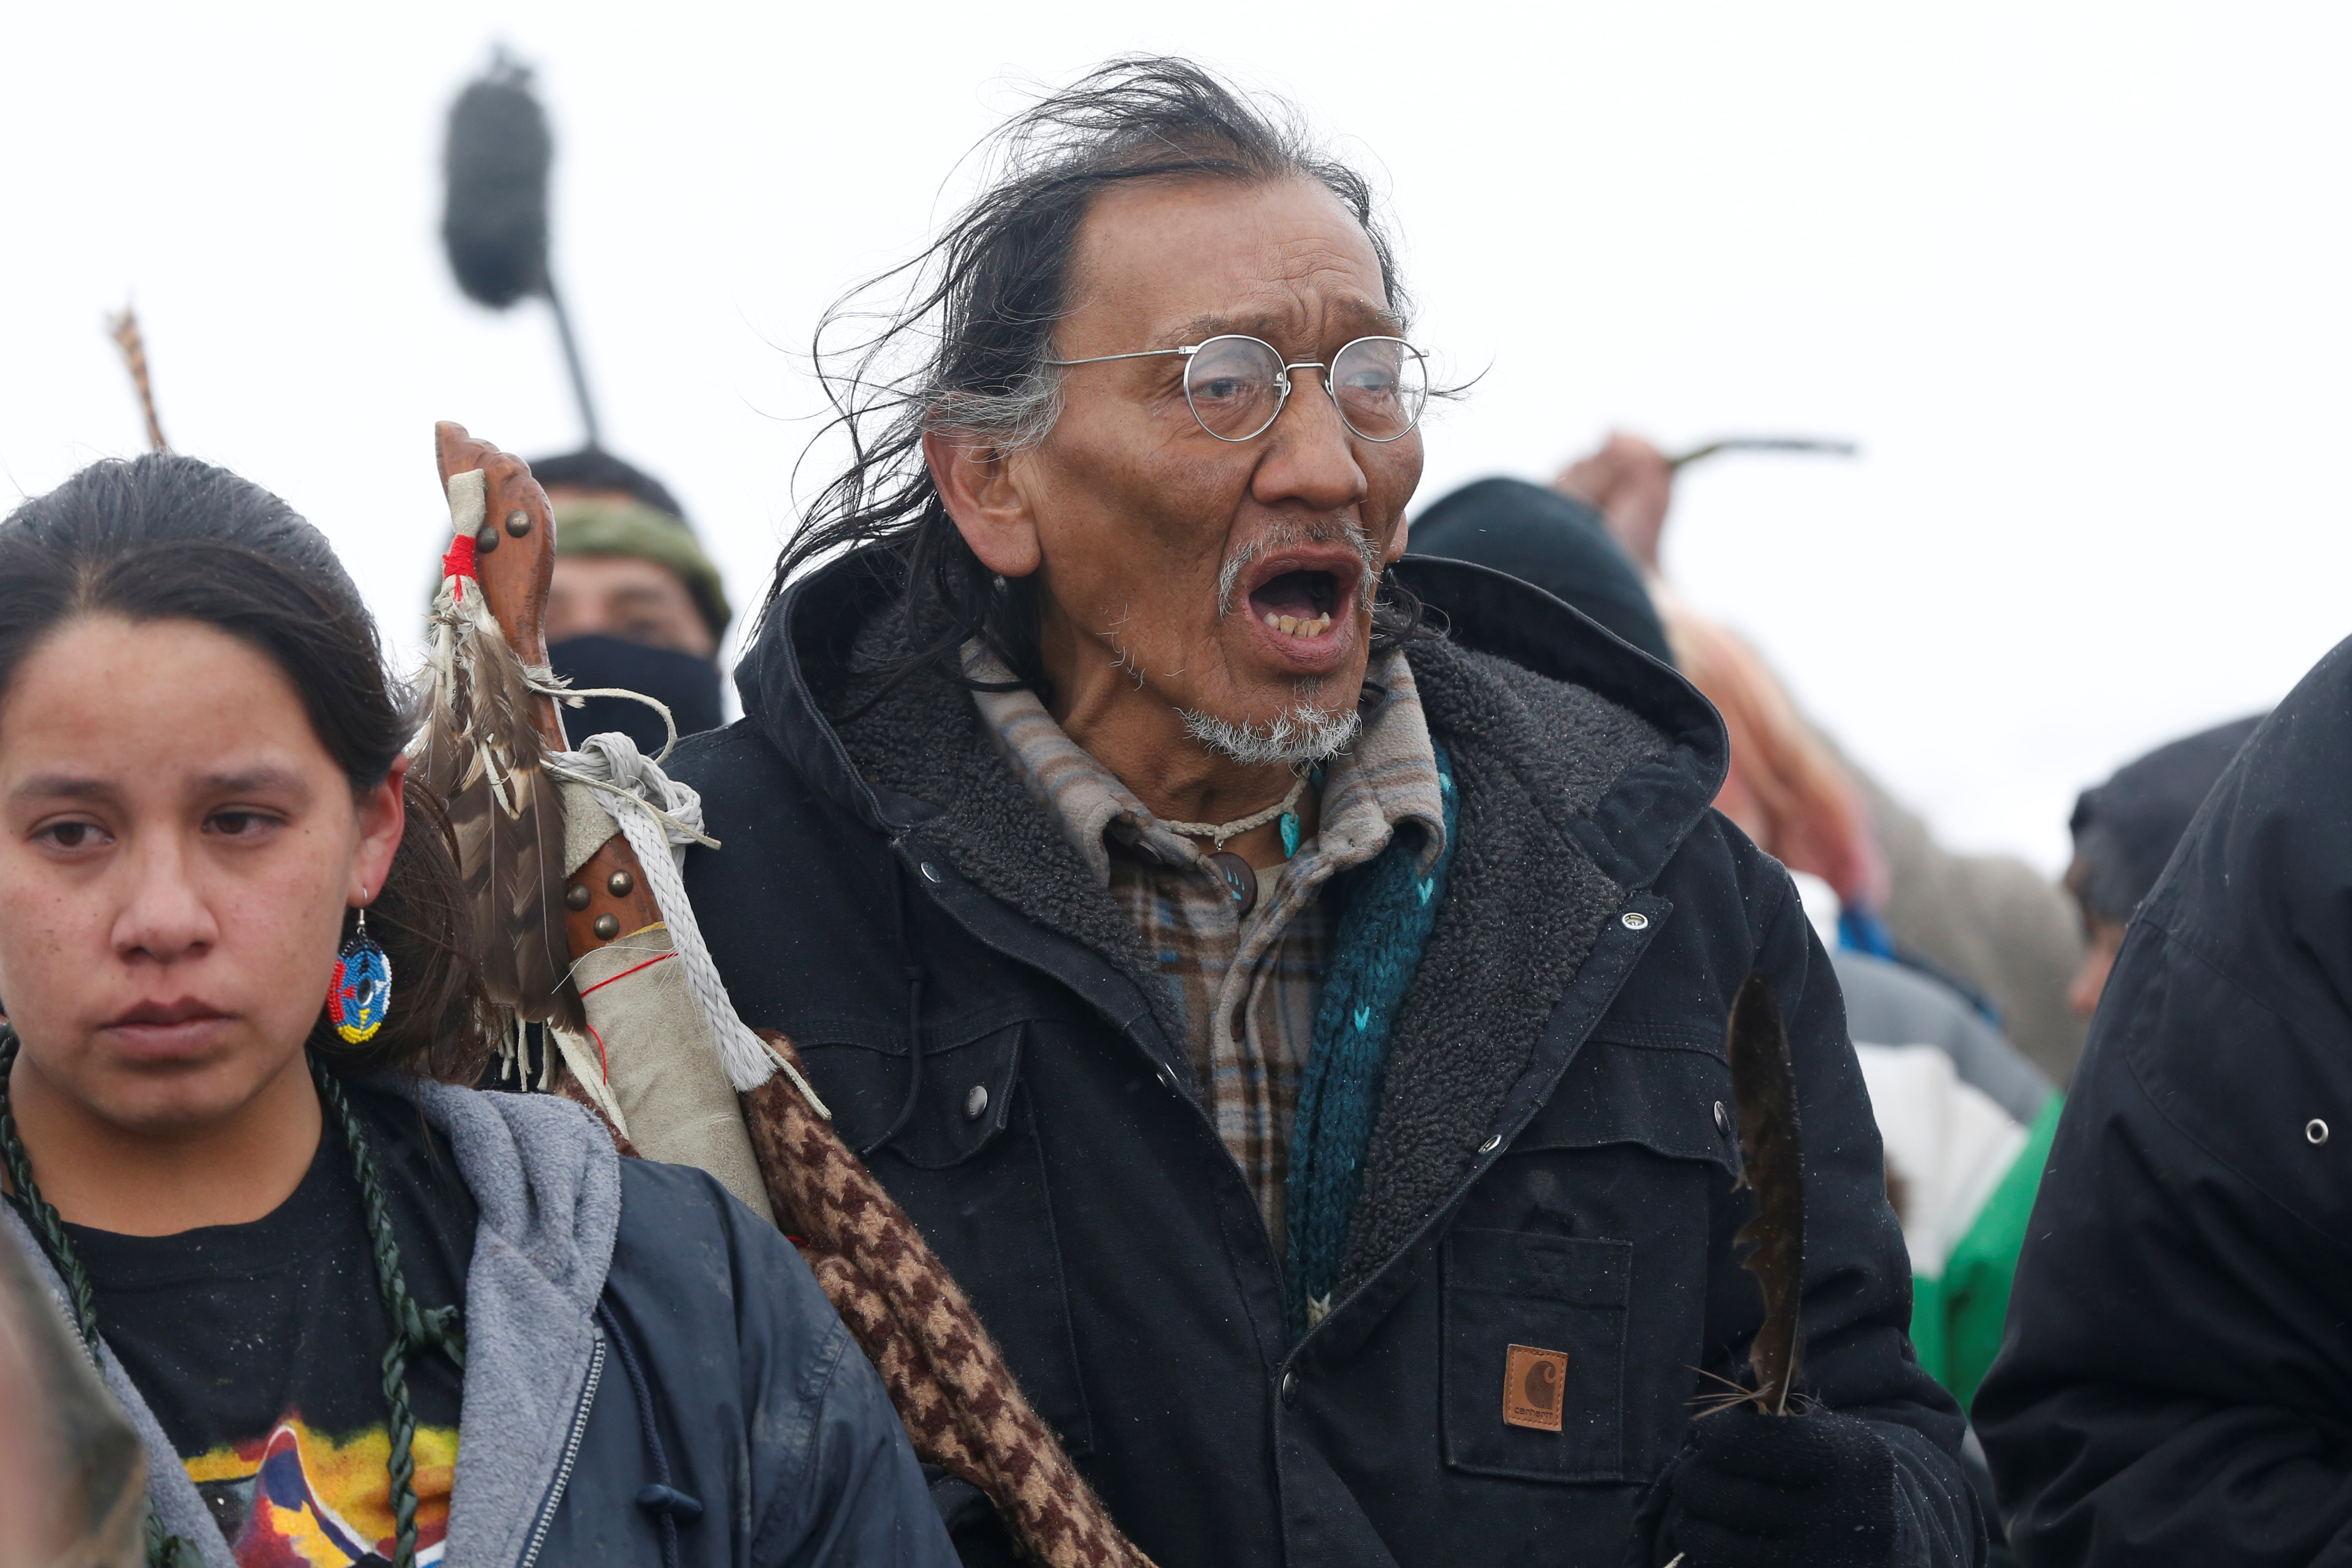 Nathan Phillips marches with other protesters out of the main opposition camp against the Dakota Access oil pipeline near Cannon Ball, North Dakota, U.S., February 22, 2017. (REUTERS/Terray Sylvester)